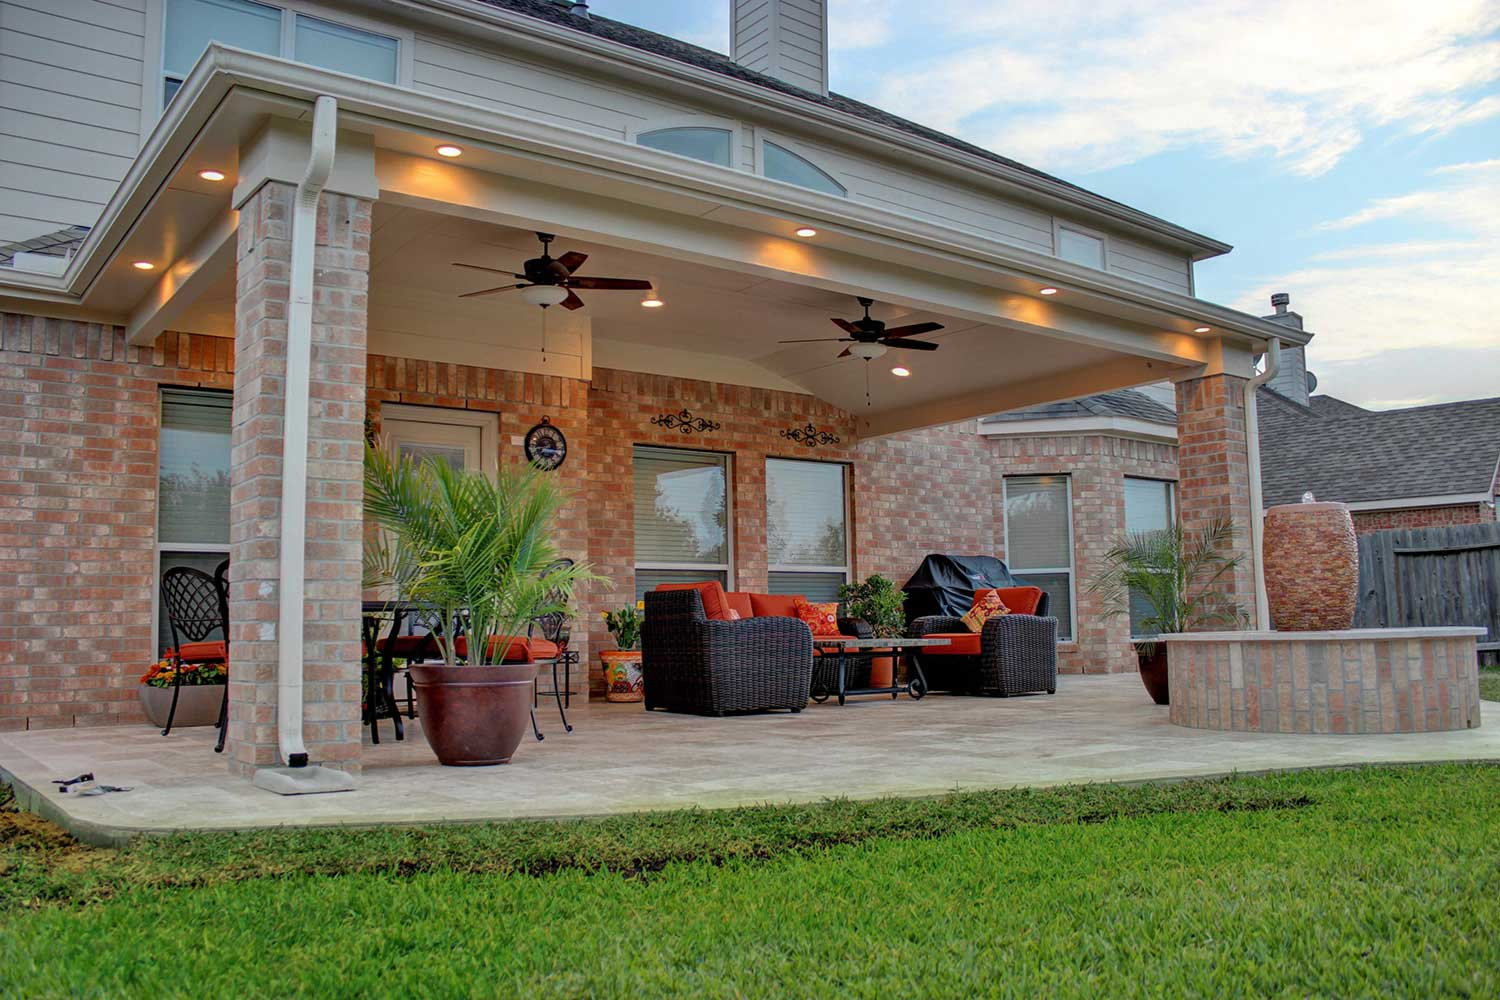 Patio Cover in Cypress, TX - HHI Patio Covers on Backyard Patio Cover  id=84930